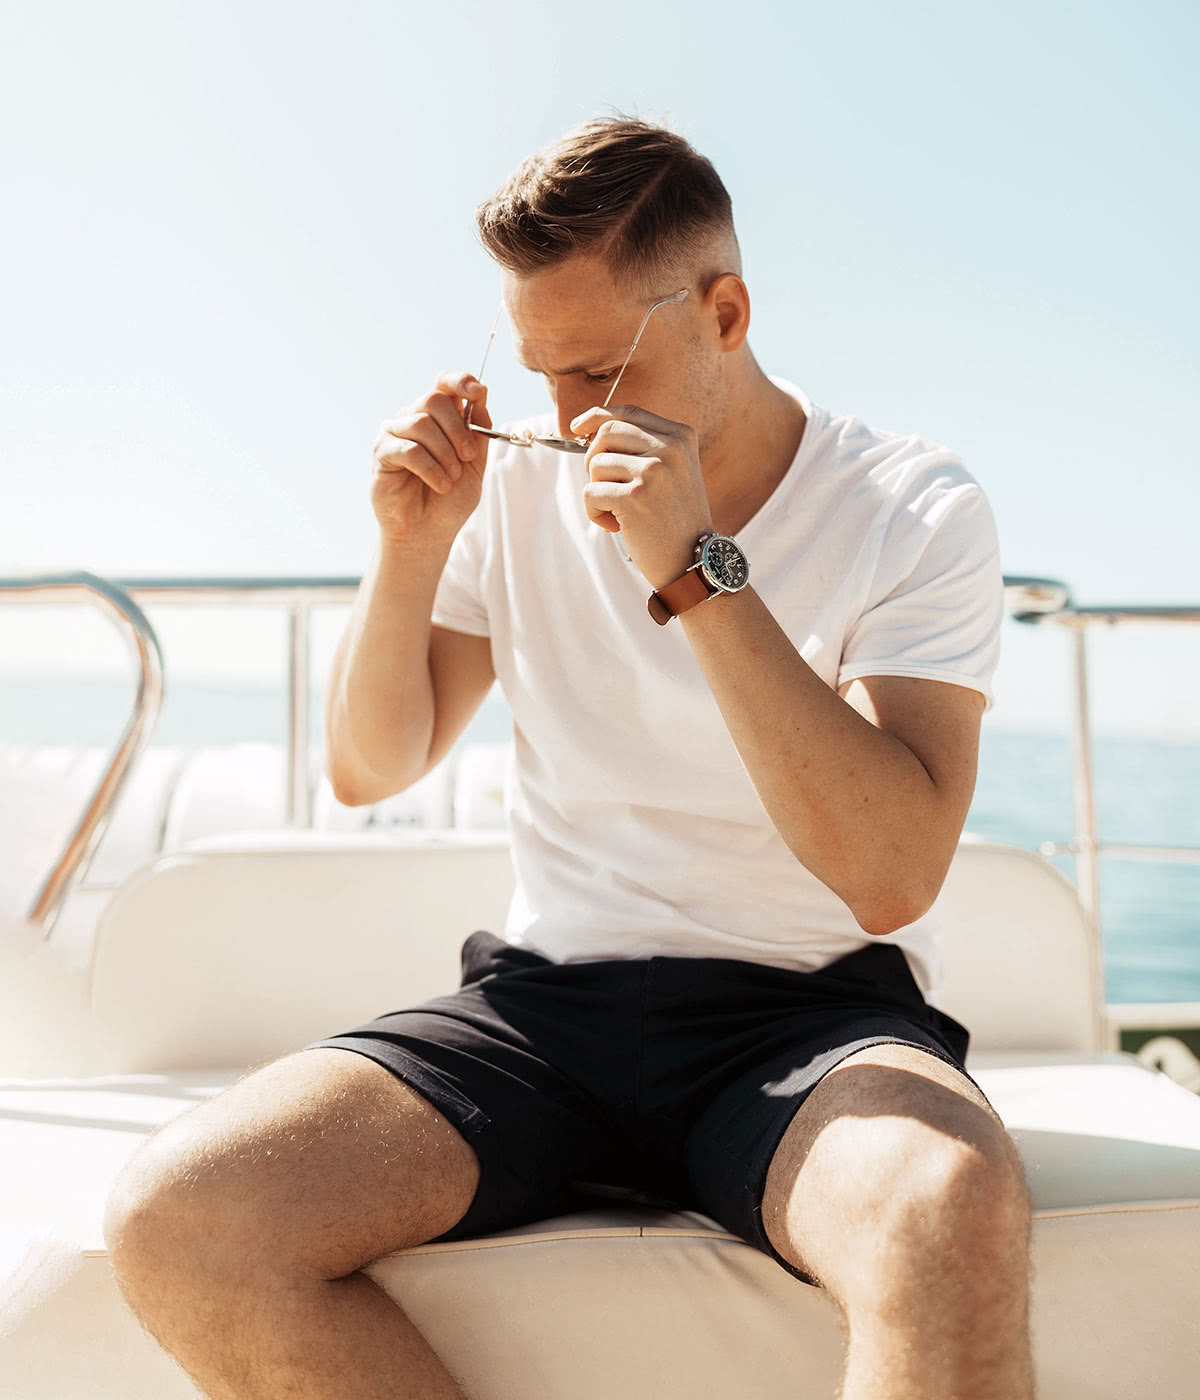 Casual dress code men style summer shorts - Luxe Digital